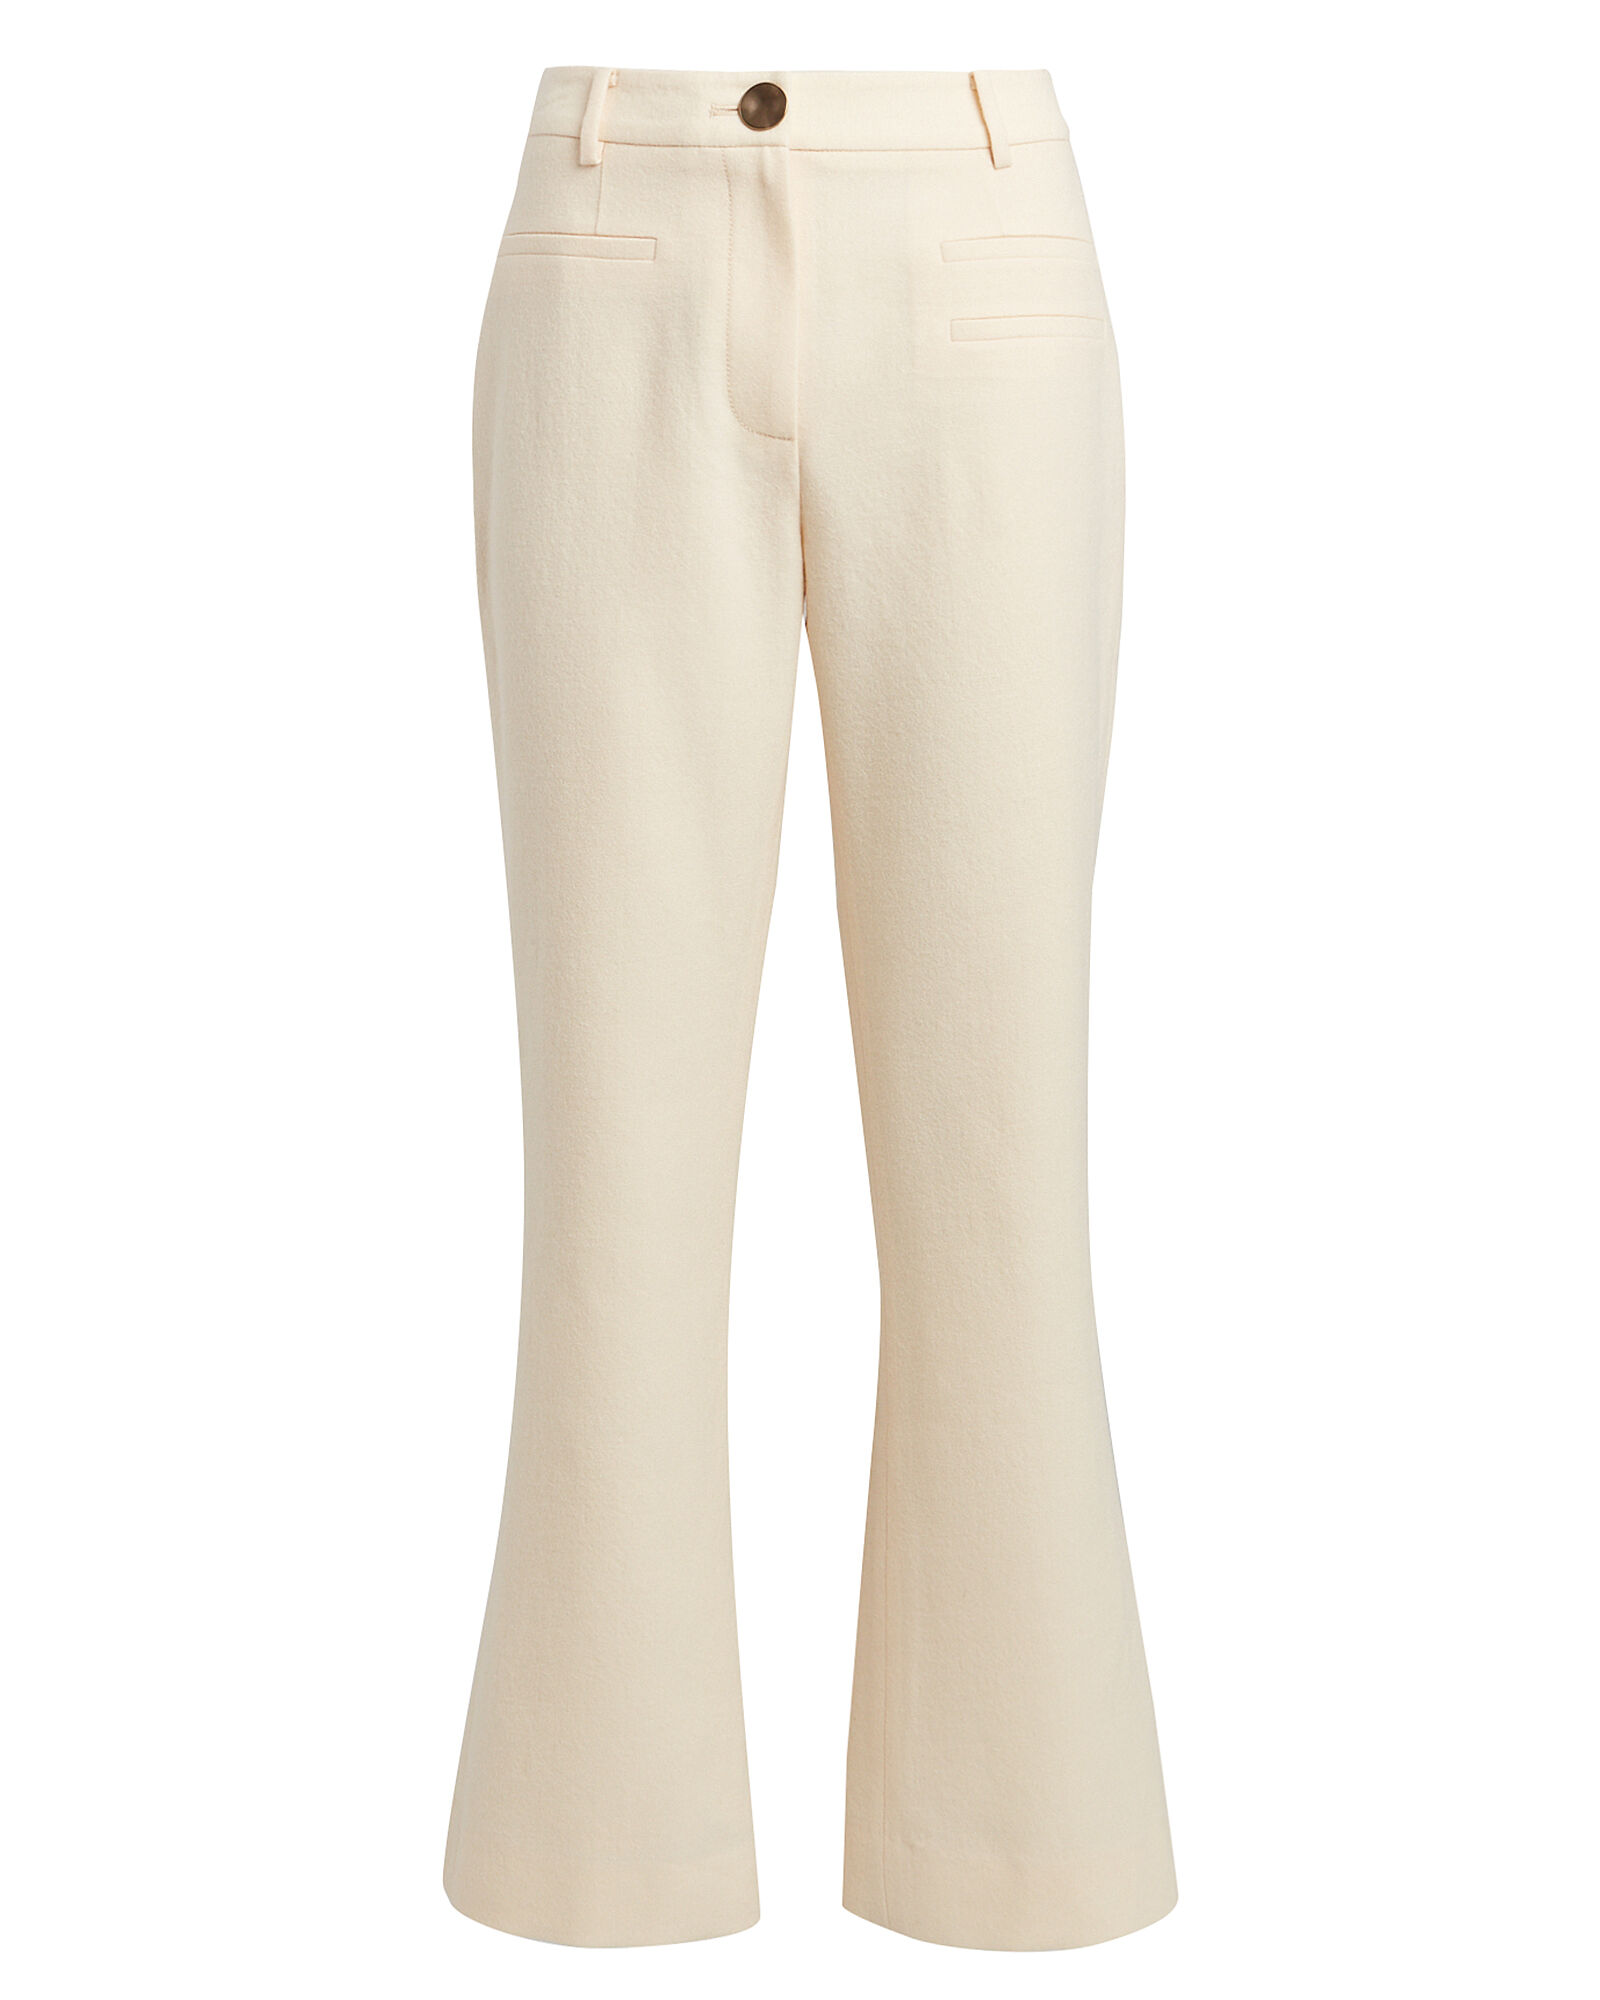 Maeve Cropped Flare Wool Pants, CREAM, hi-res